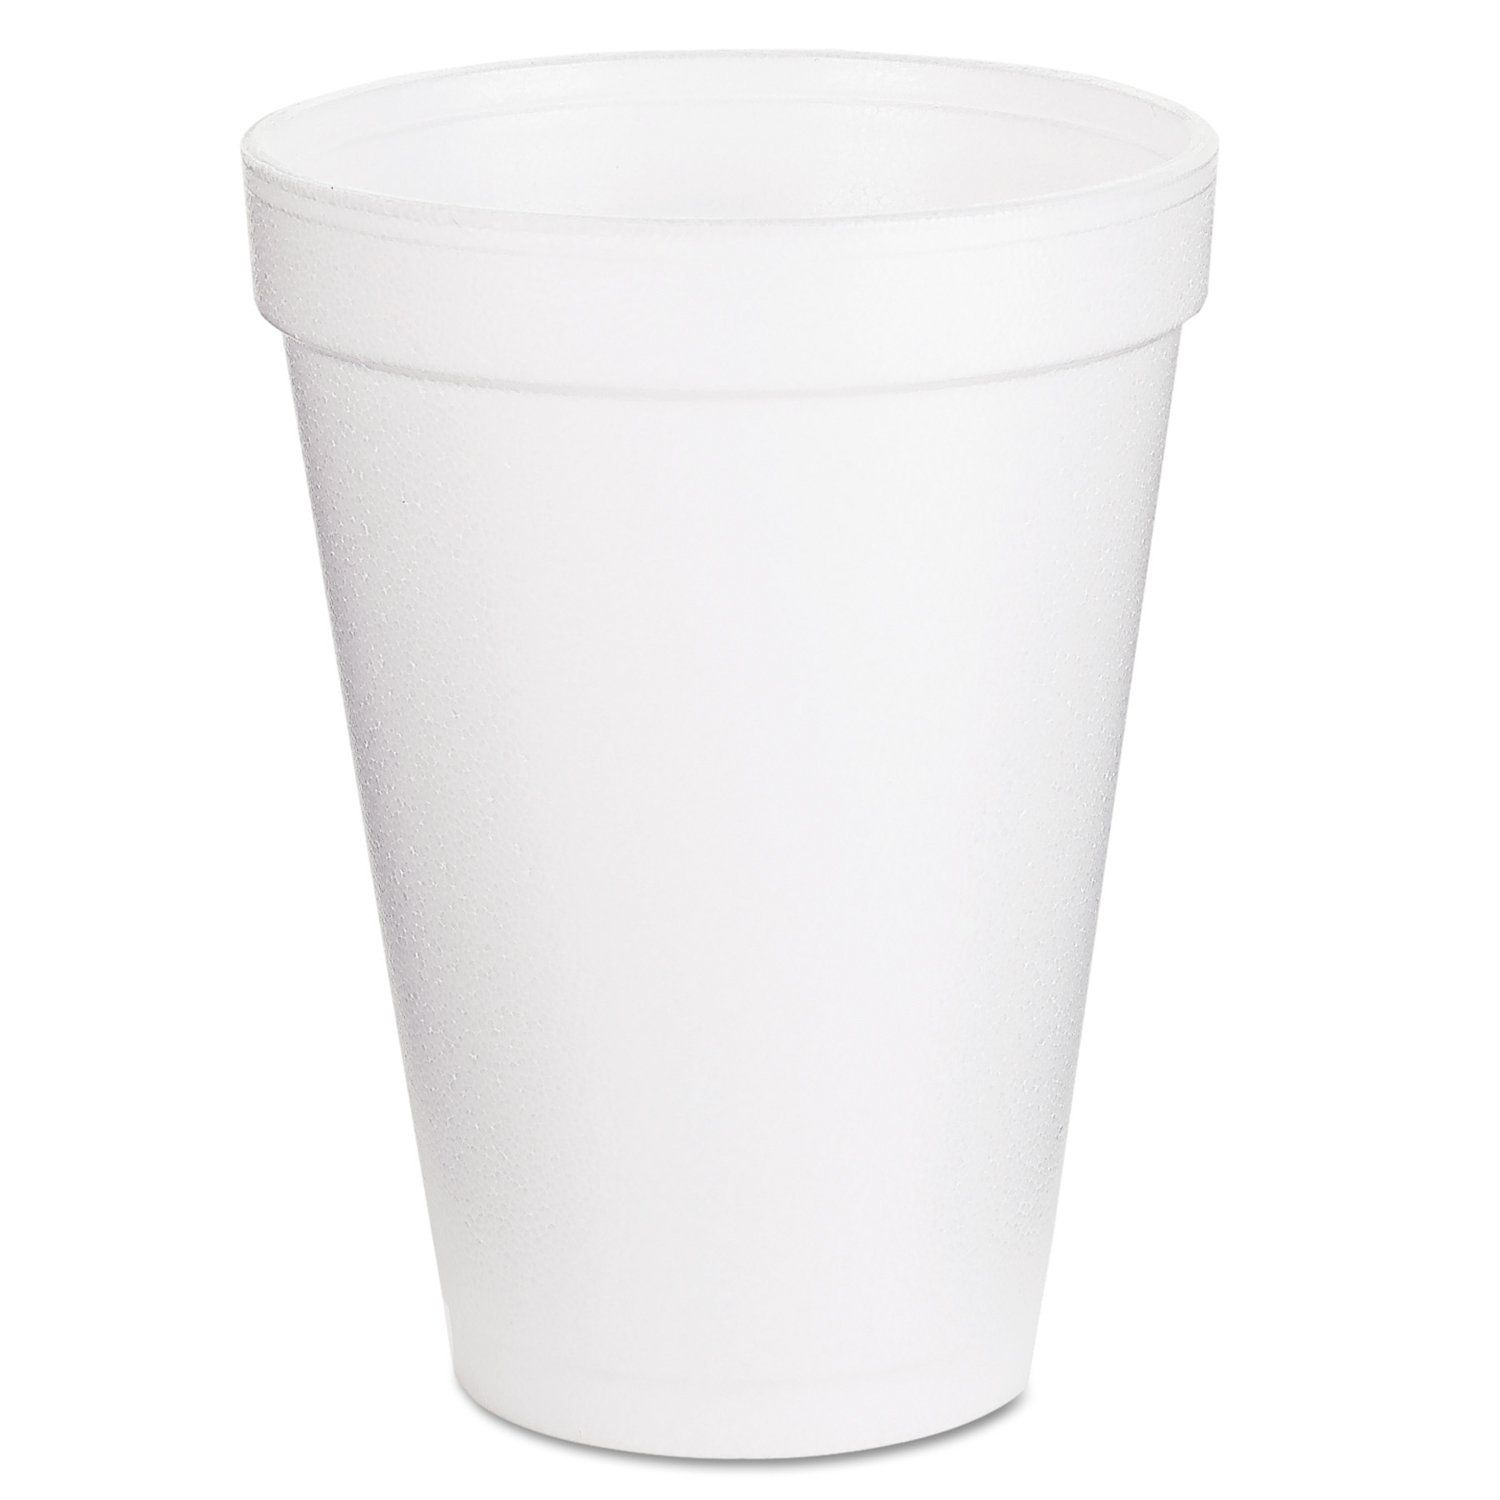 Dart Container Corp 12j12 Foam Cups 12 Oz White Pack Of 1000 Awesome Products Selected By Anna Churchill Foam Cups House Supplies Plastic Plates